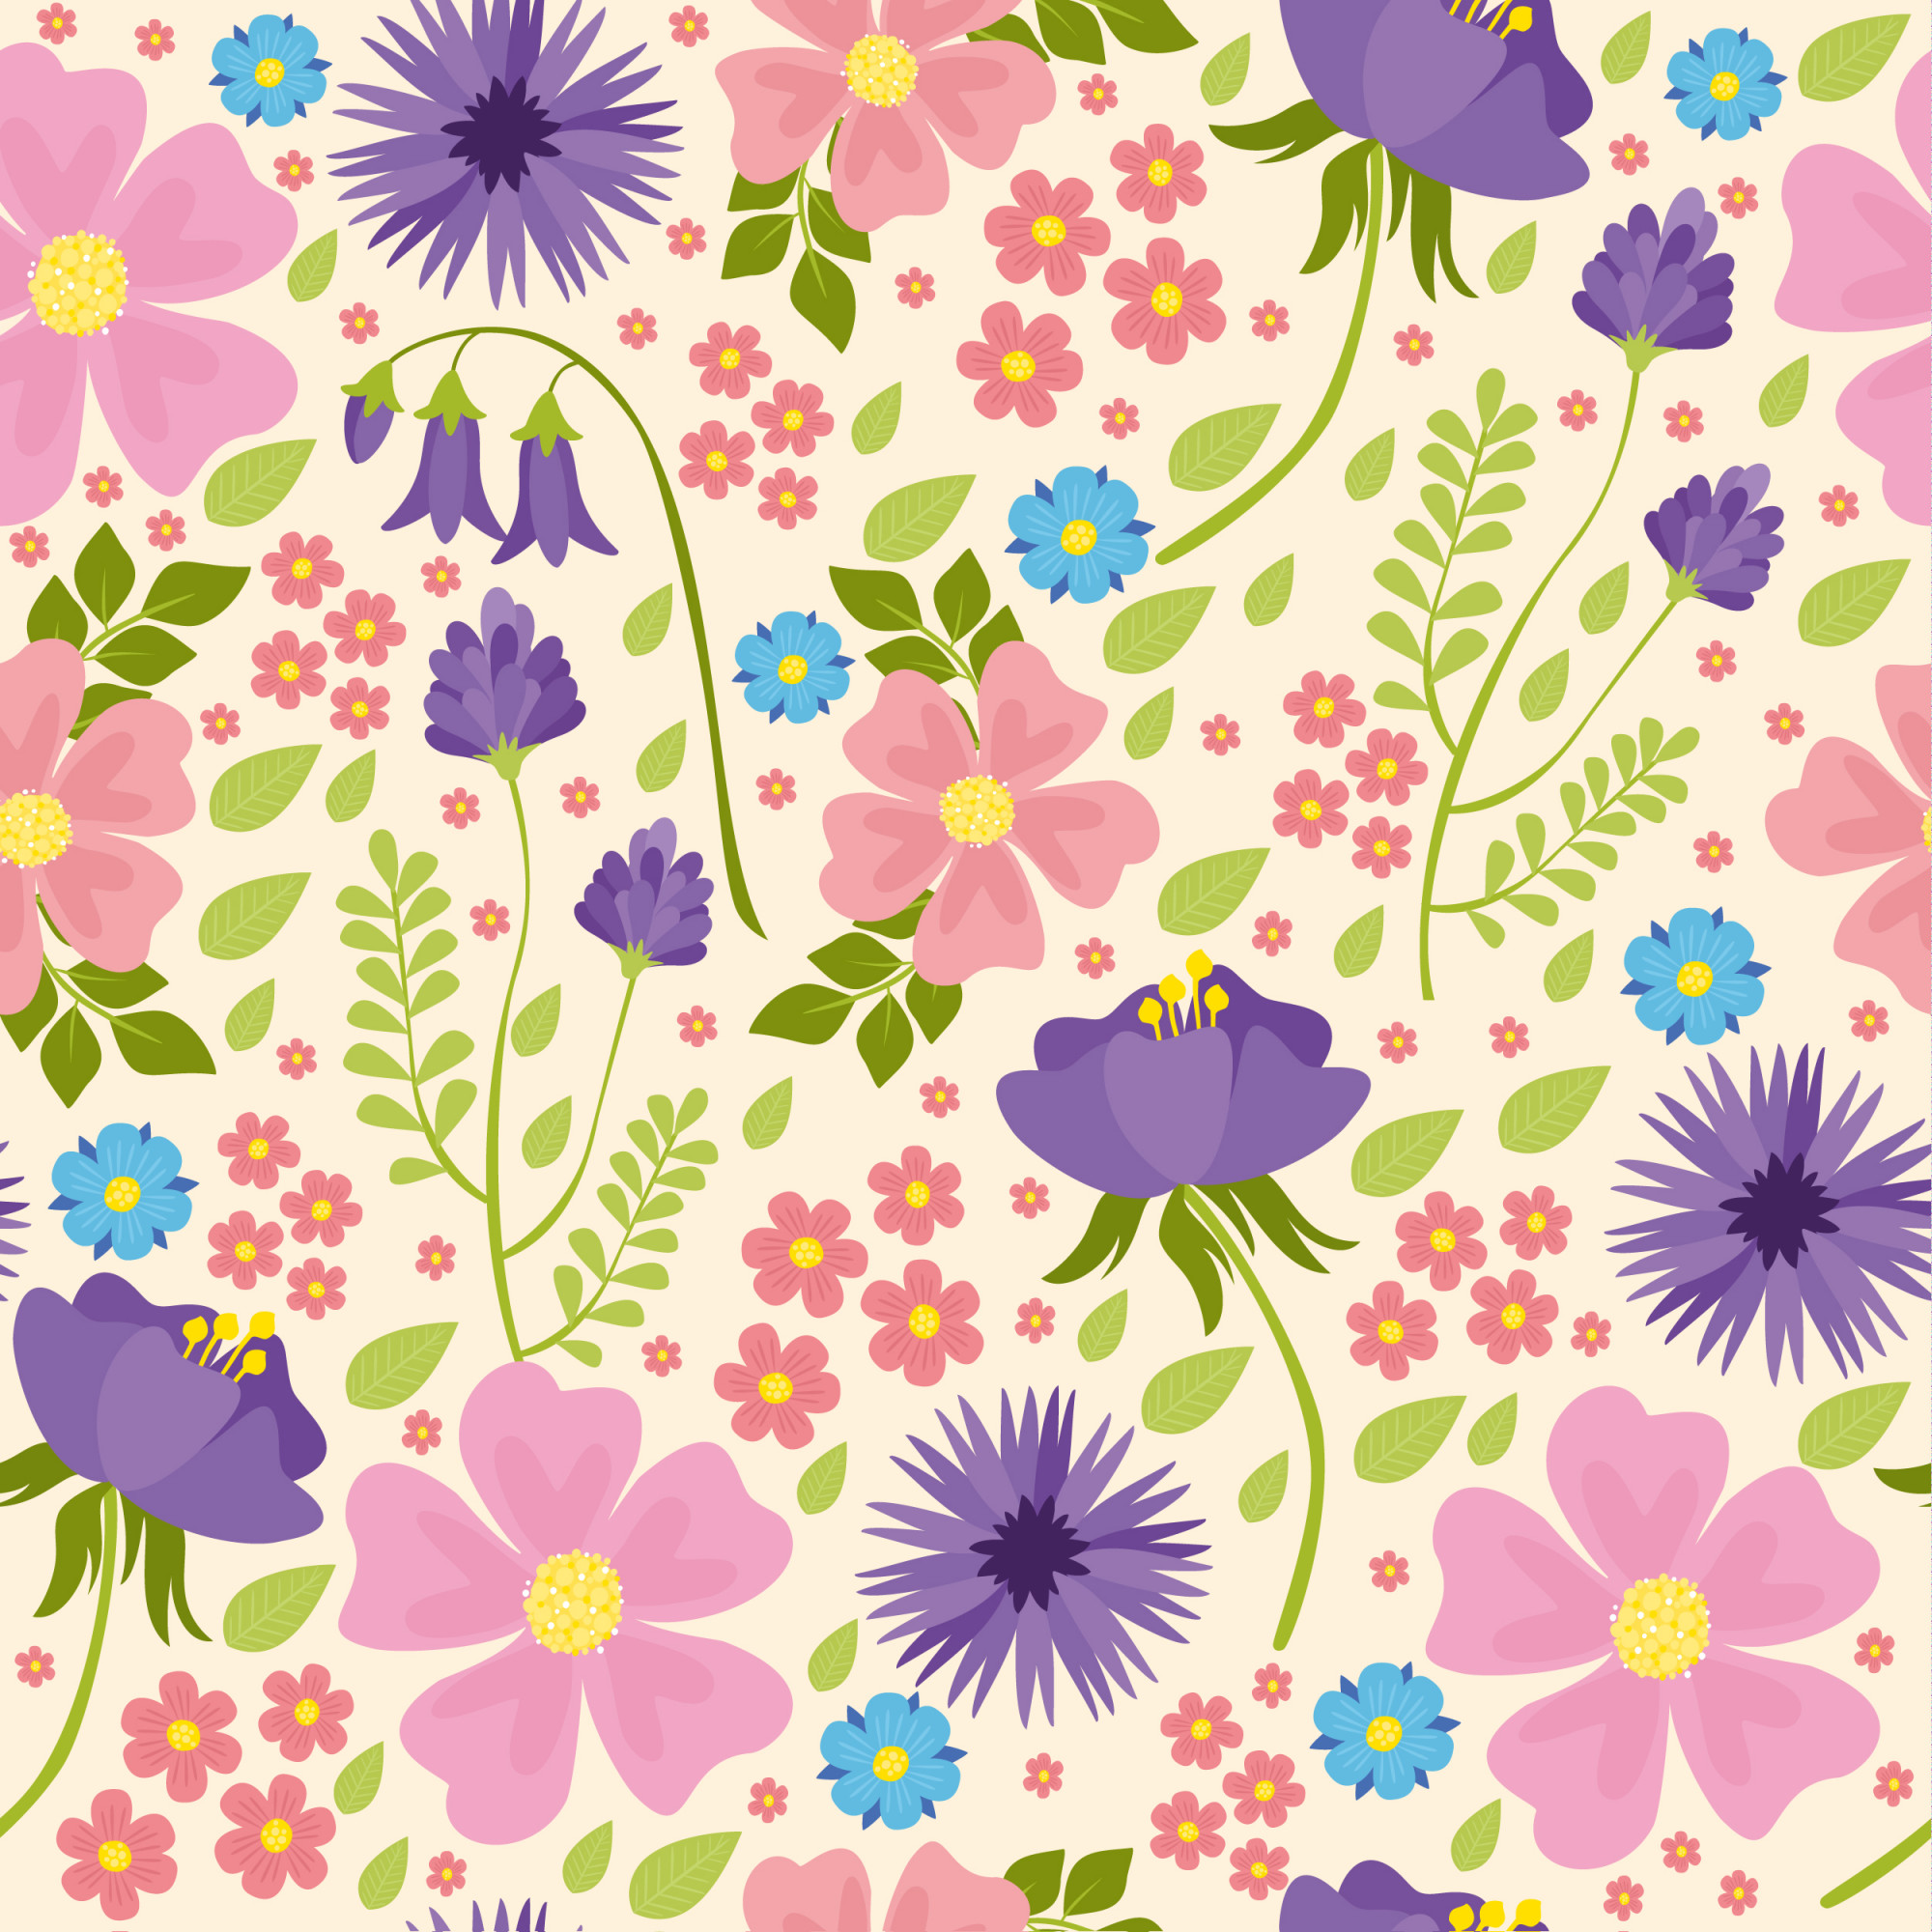 Vector seamless pattern with wildflowers, pink and purple flowers